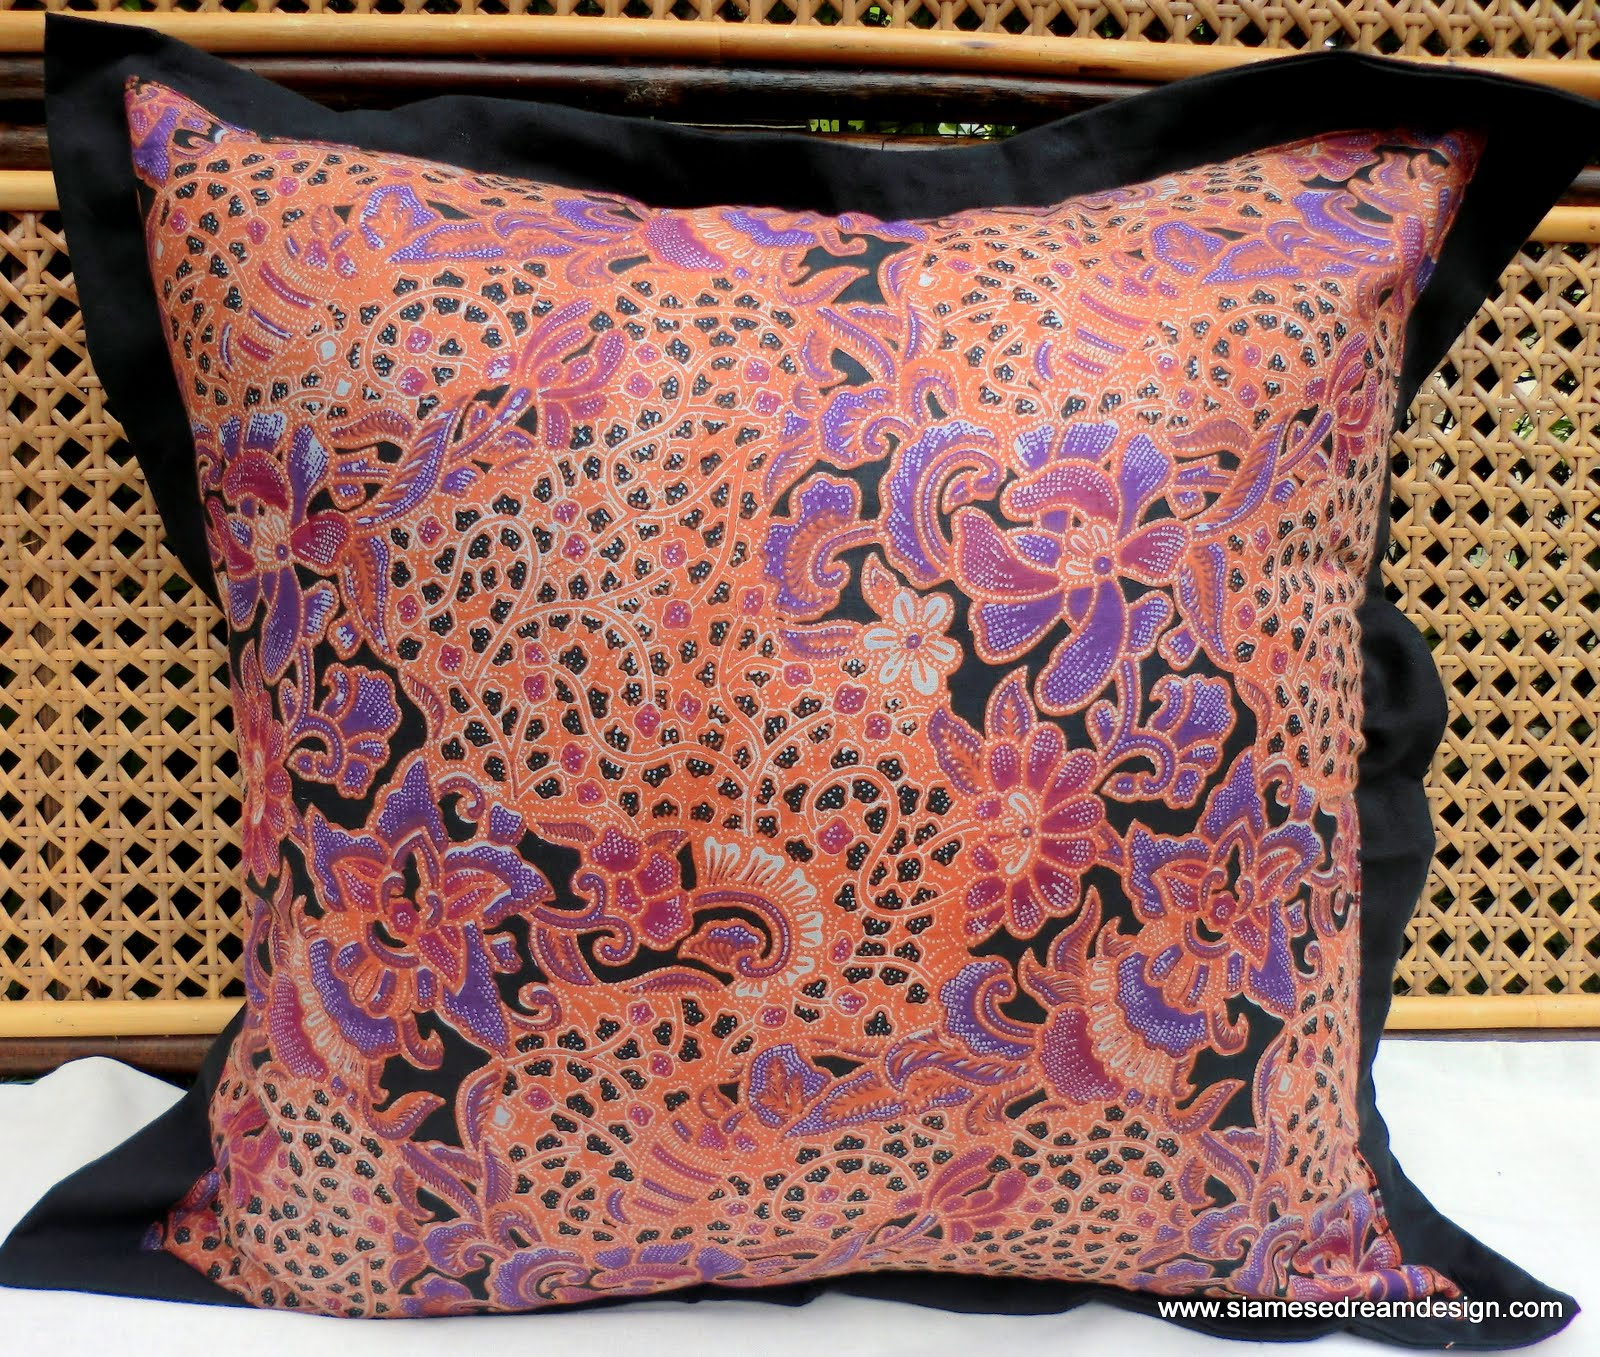 XL Floor Pillow Or Cushion Cover In Colorful Natural Balinese Batik Peach And Lavender 24 Inch ...